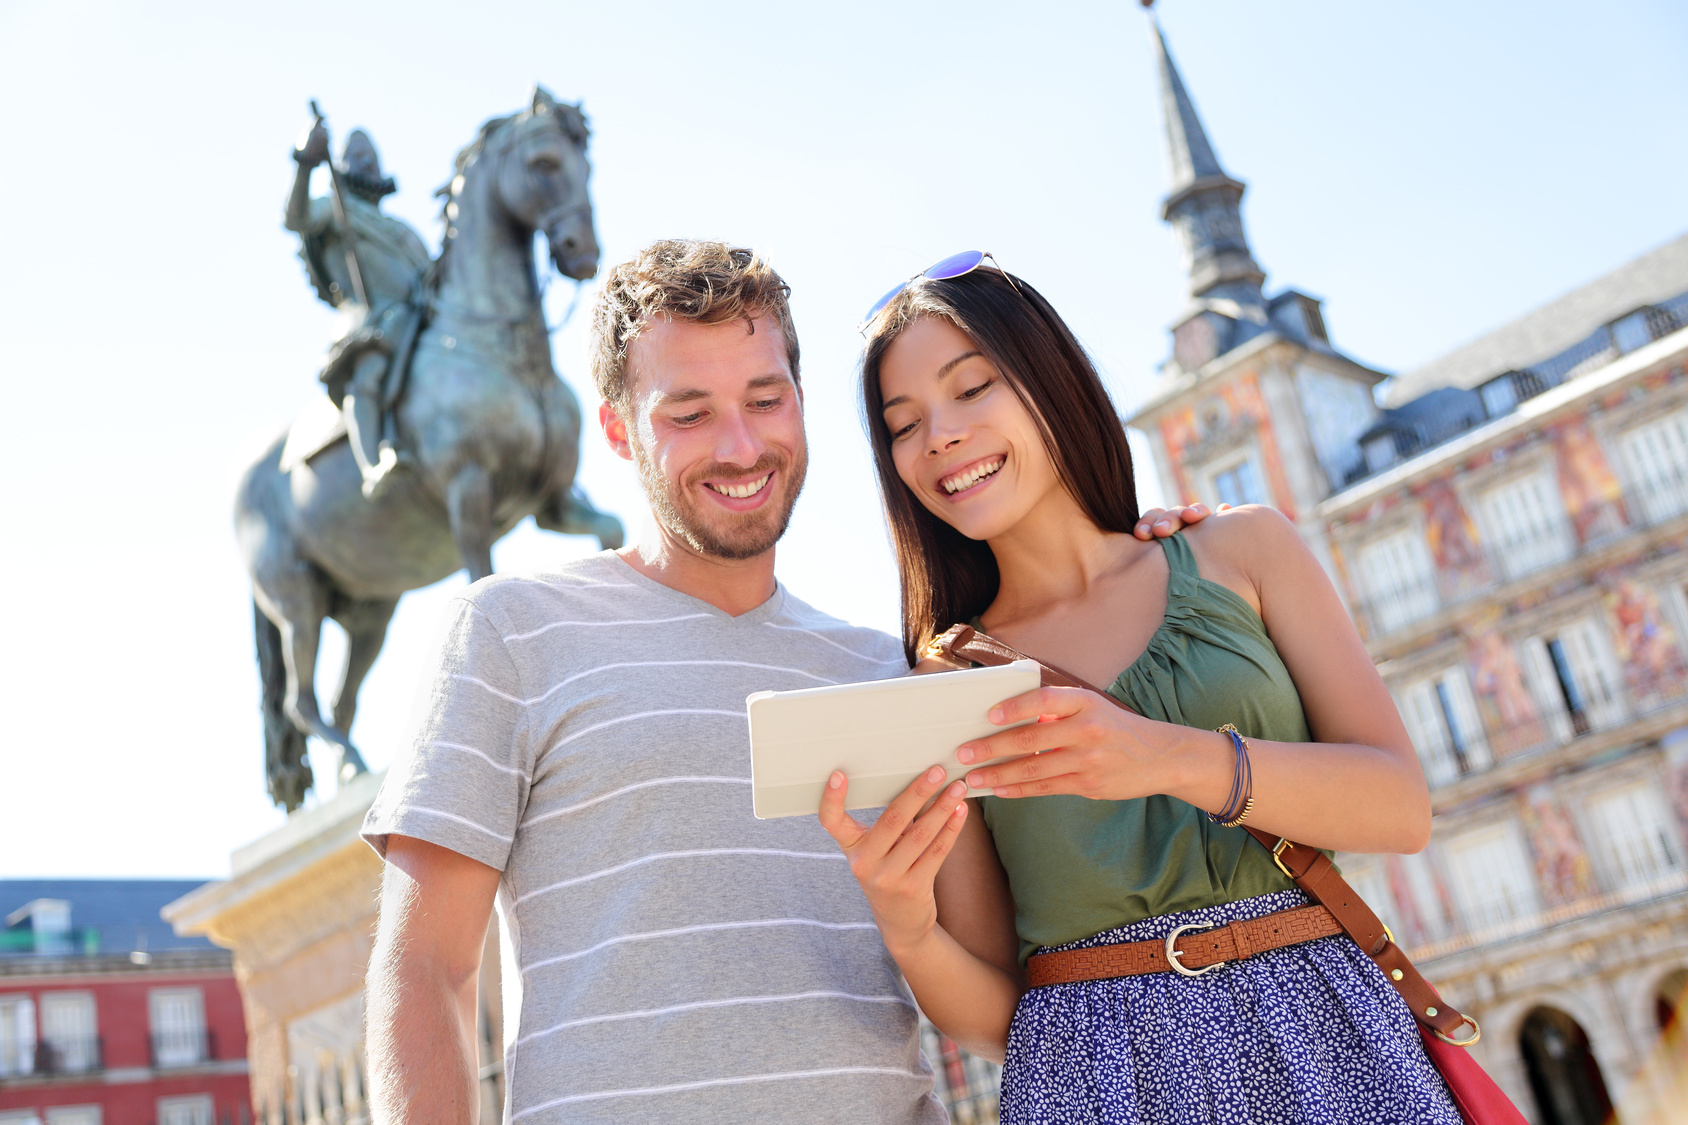 Madrid tourists using tablet travel app guidebook ebook on Plaza Mayor by statue of King Philip III. Tourist couple sightseeing visiting tourism landmarks and attractions in Spain. Young woman and man